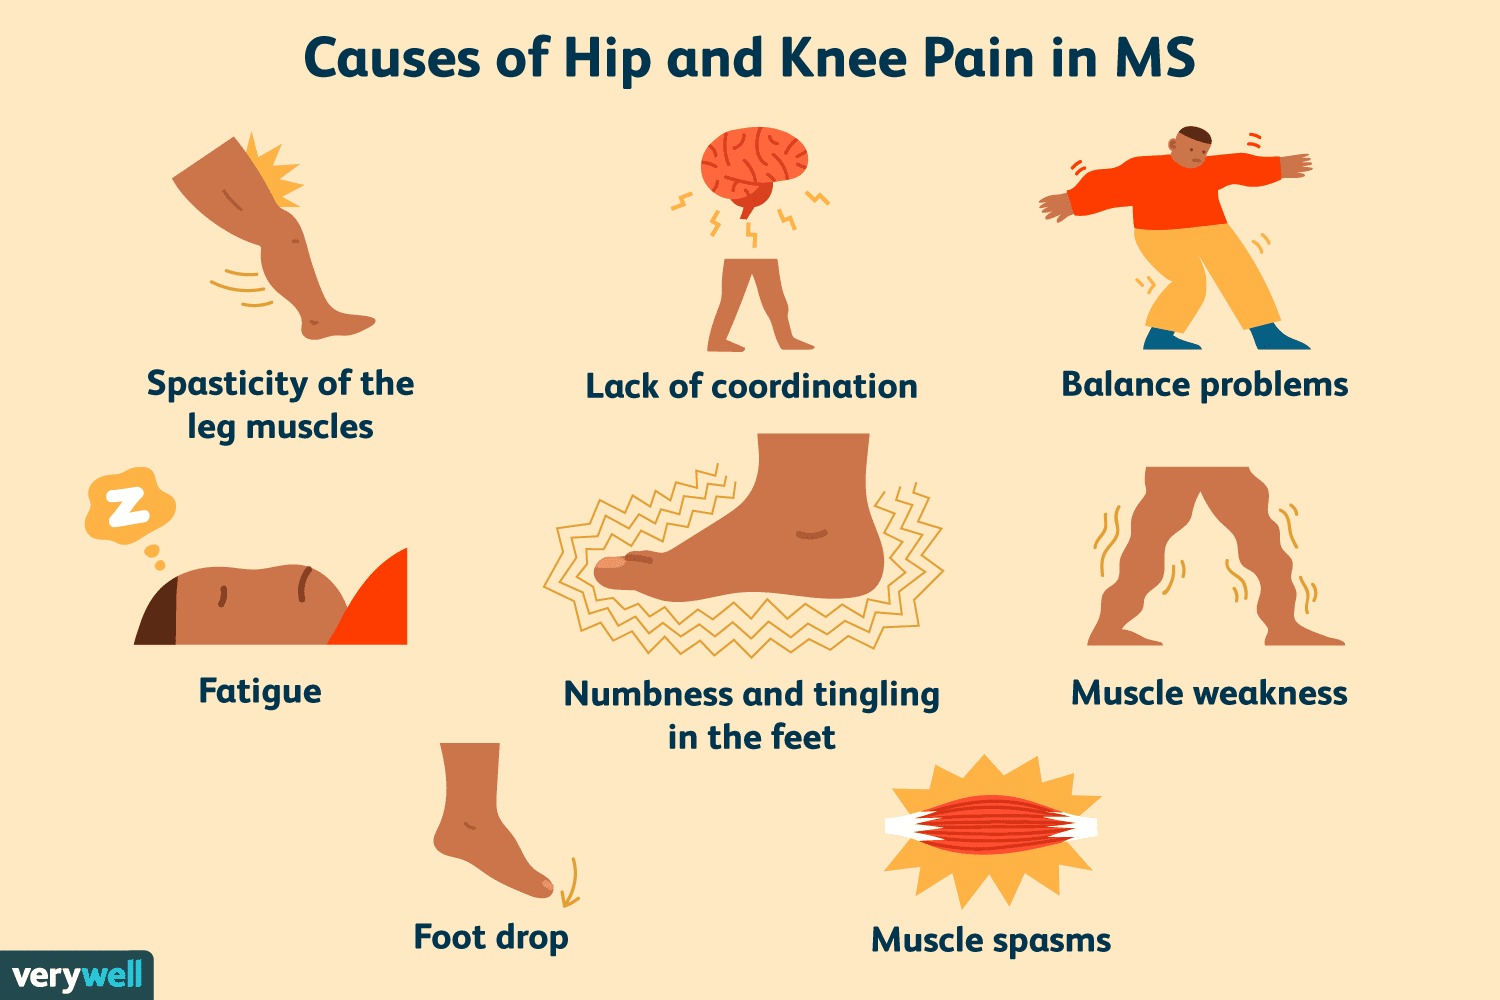 Causes of Hip and Knee Pain in MS